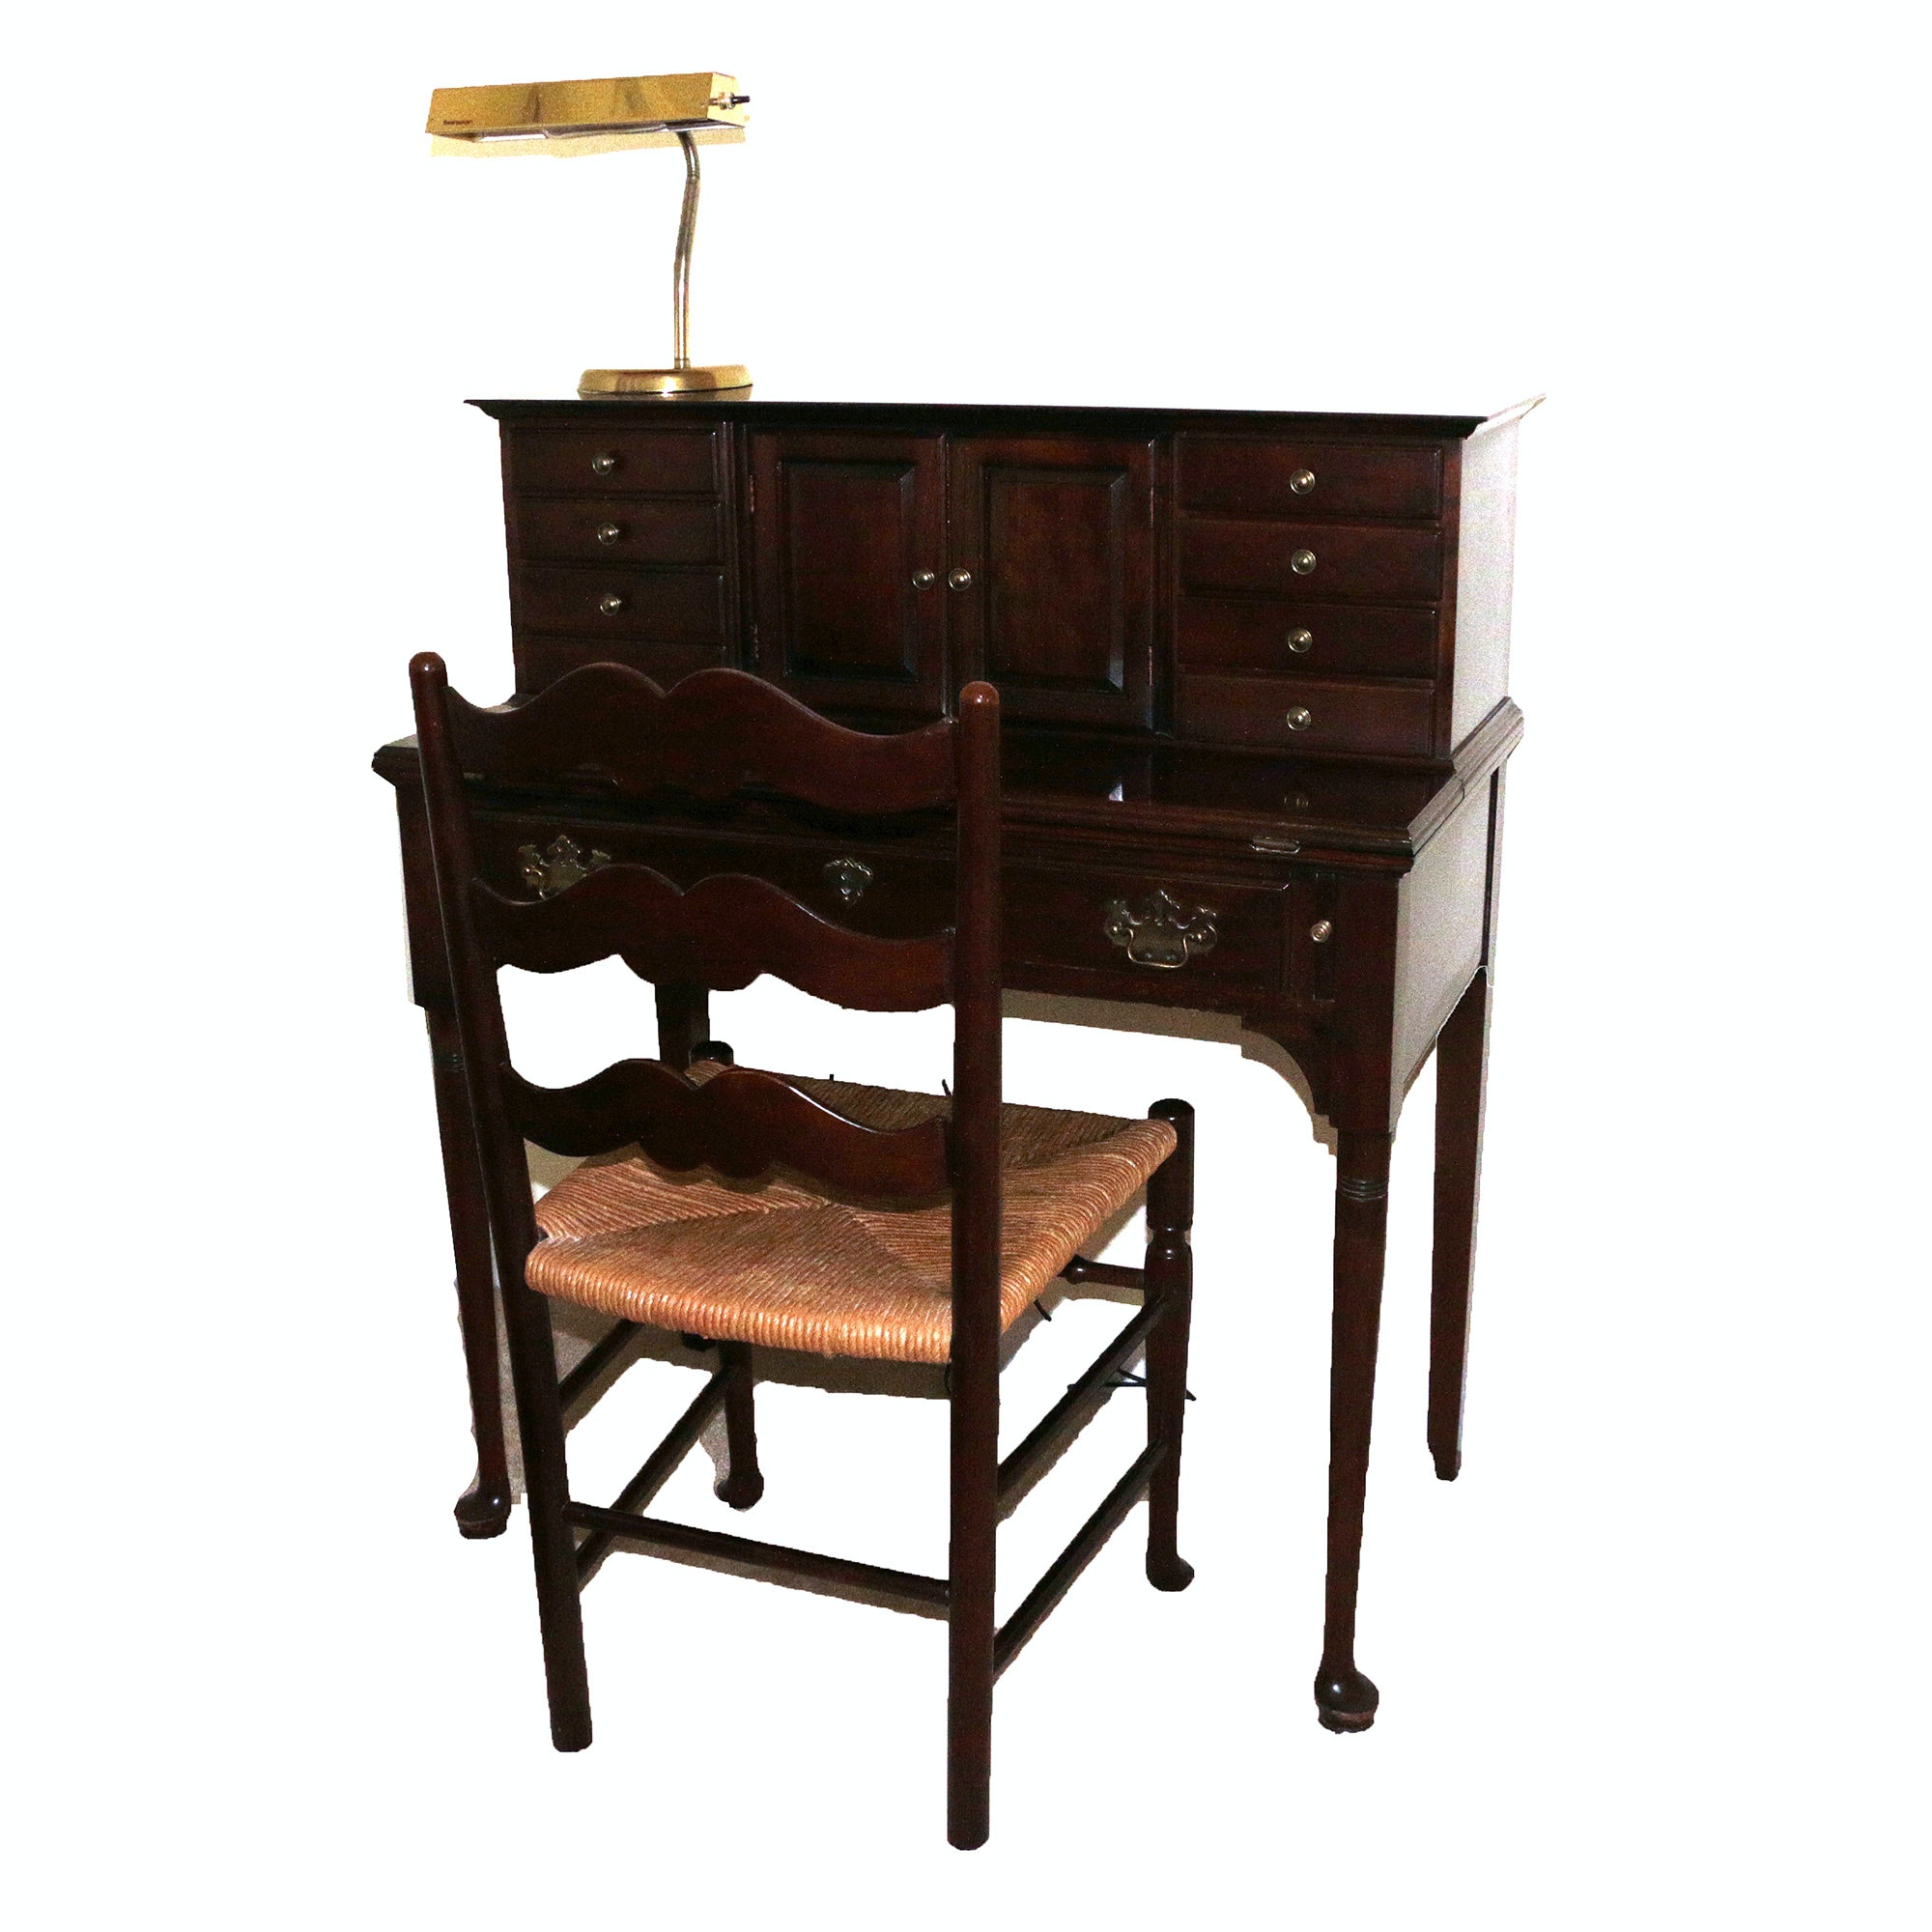 Pennsylvania House Queen Anne Style Cherry Writing Desk with Chair and Lamp